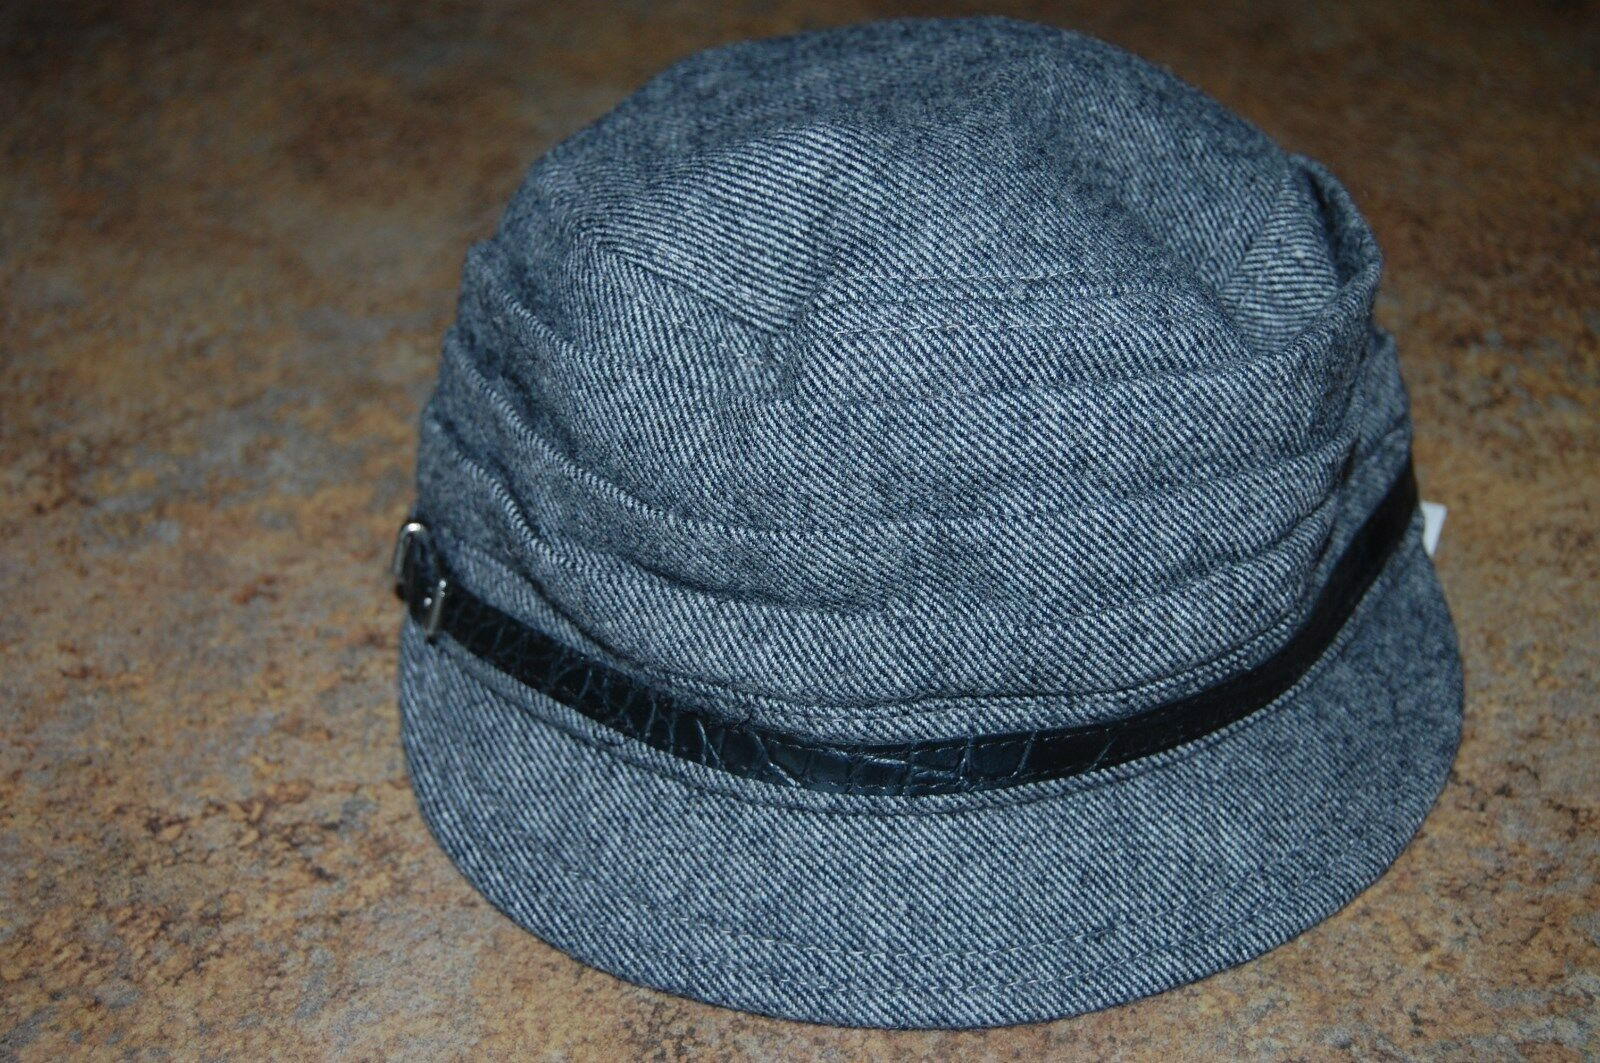 54e55e0bd37 Nine West Style Hat cap Gray One Size Fits Most Women  nw5901205 ...